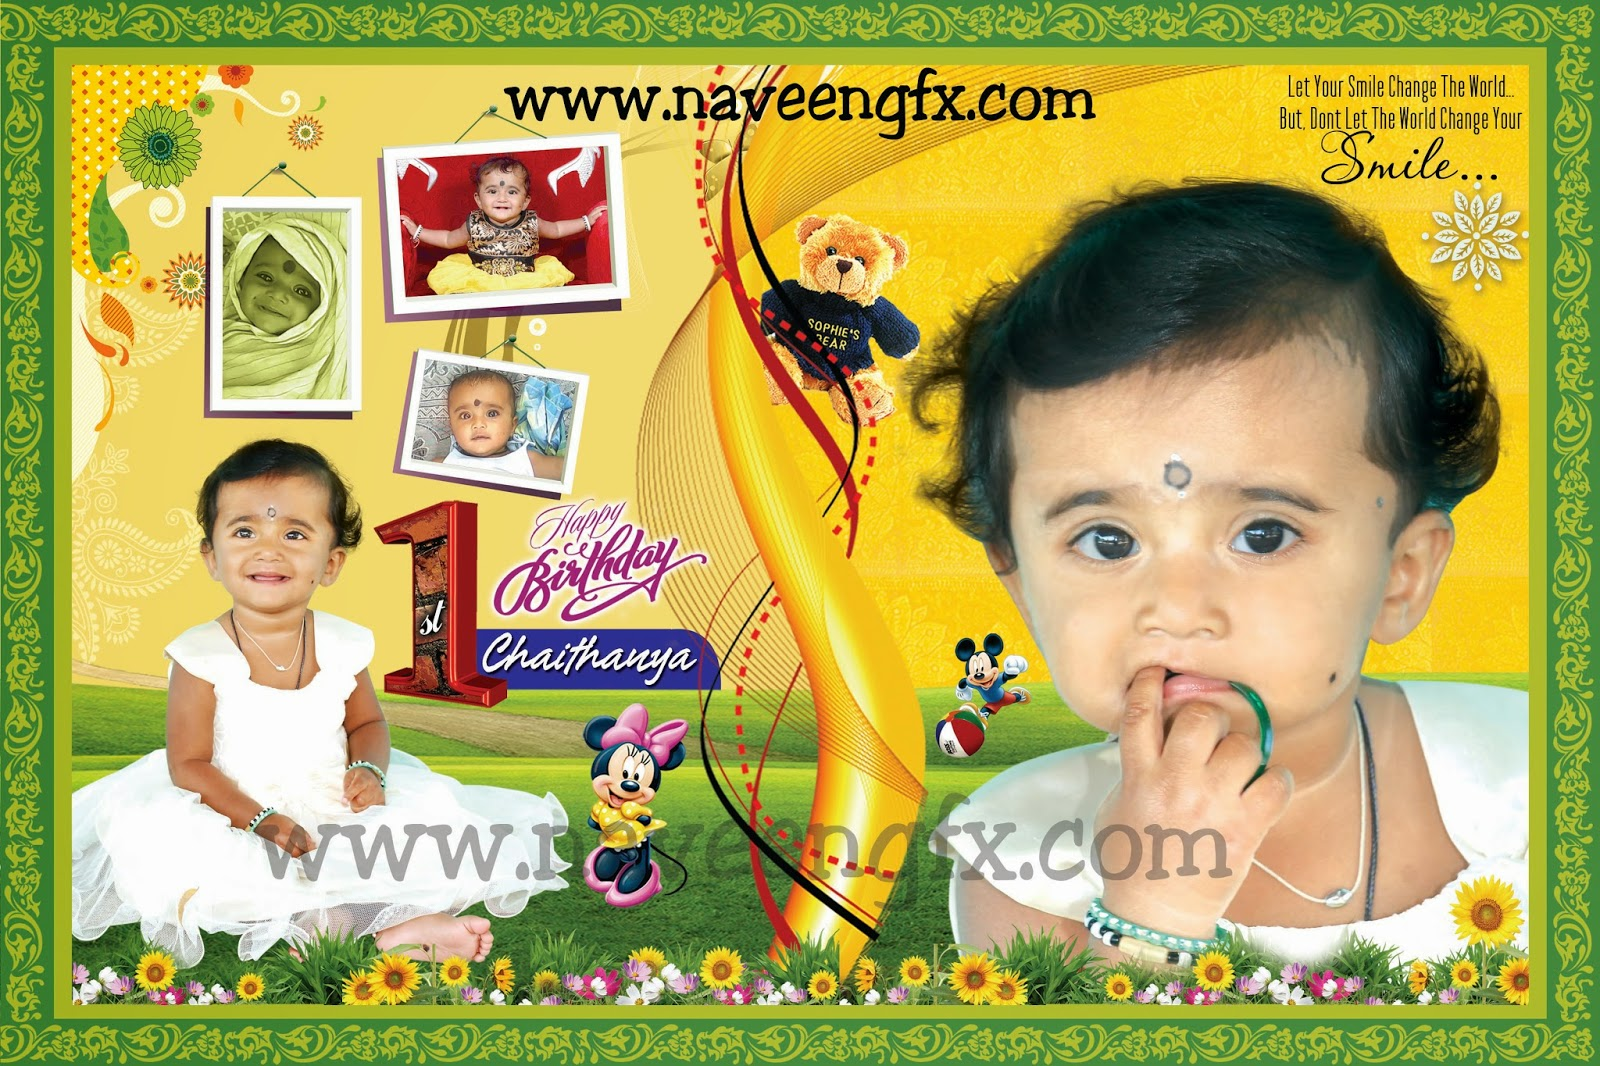 1st birthday banner background design ; feca1e4156da64aaca9b1910be24ed77